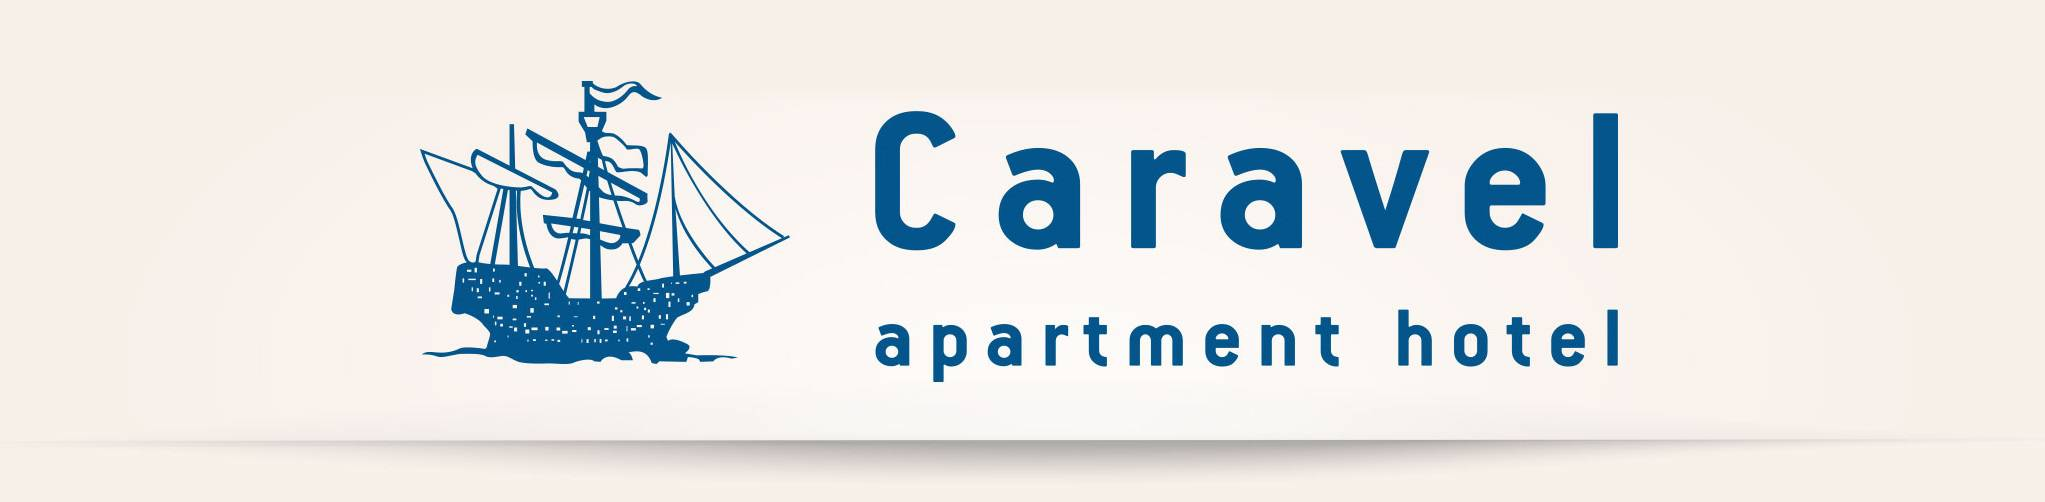 Caravel Apartment Hotel (logo), Ixia, Rhodes, Greece